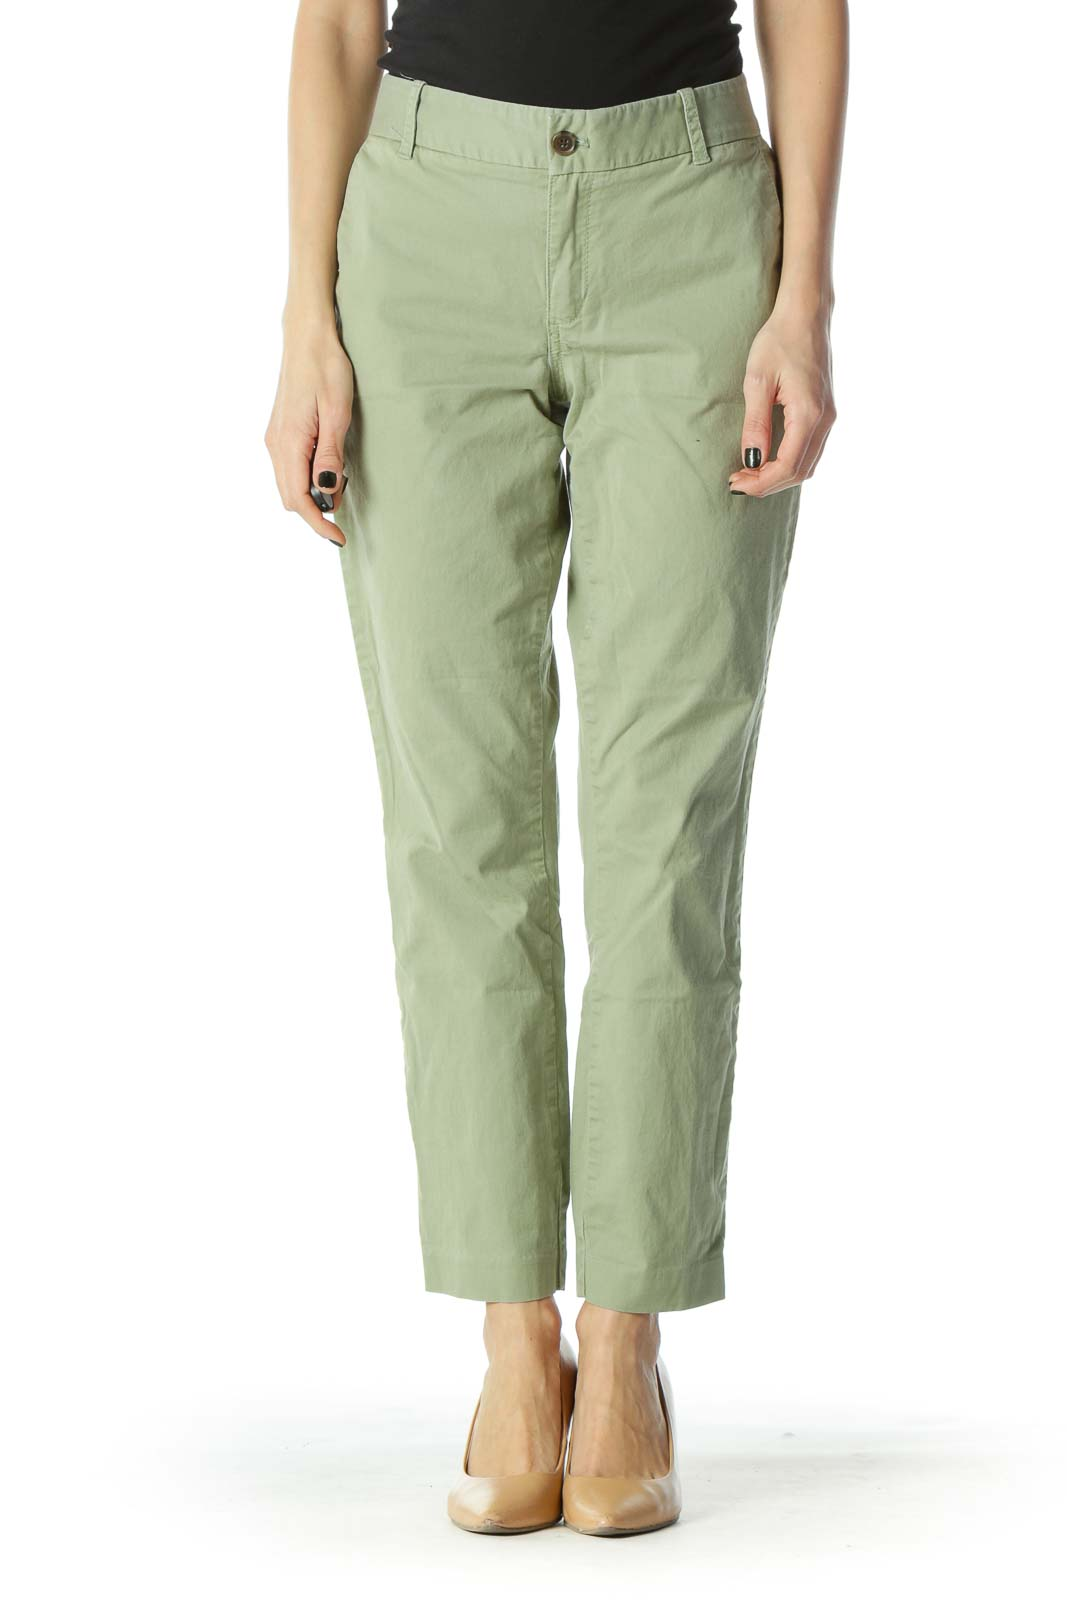 Green Stretch Chino